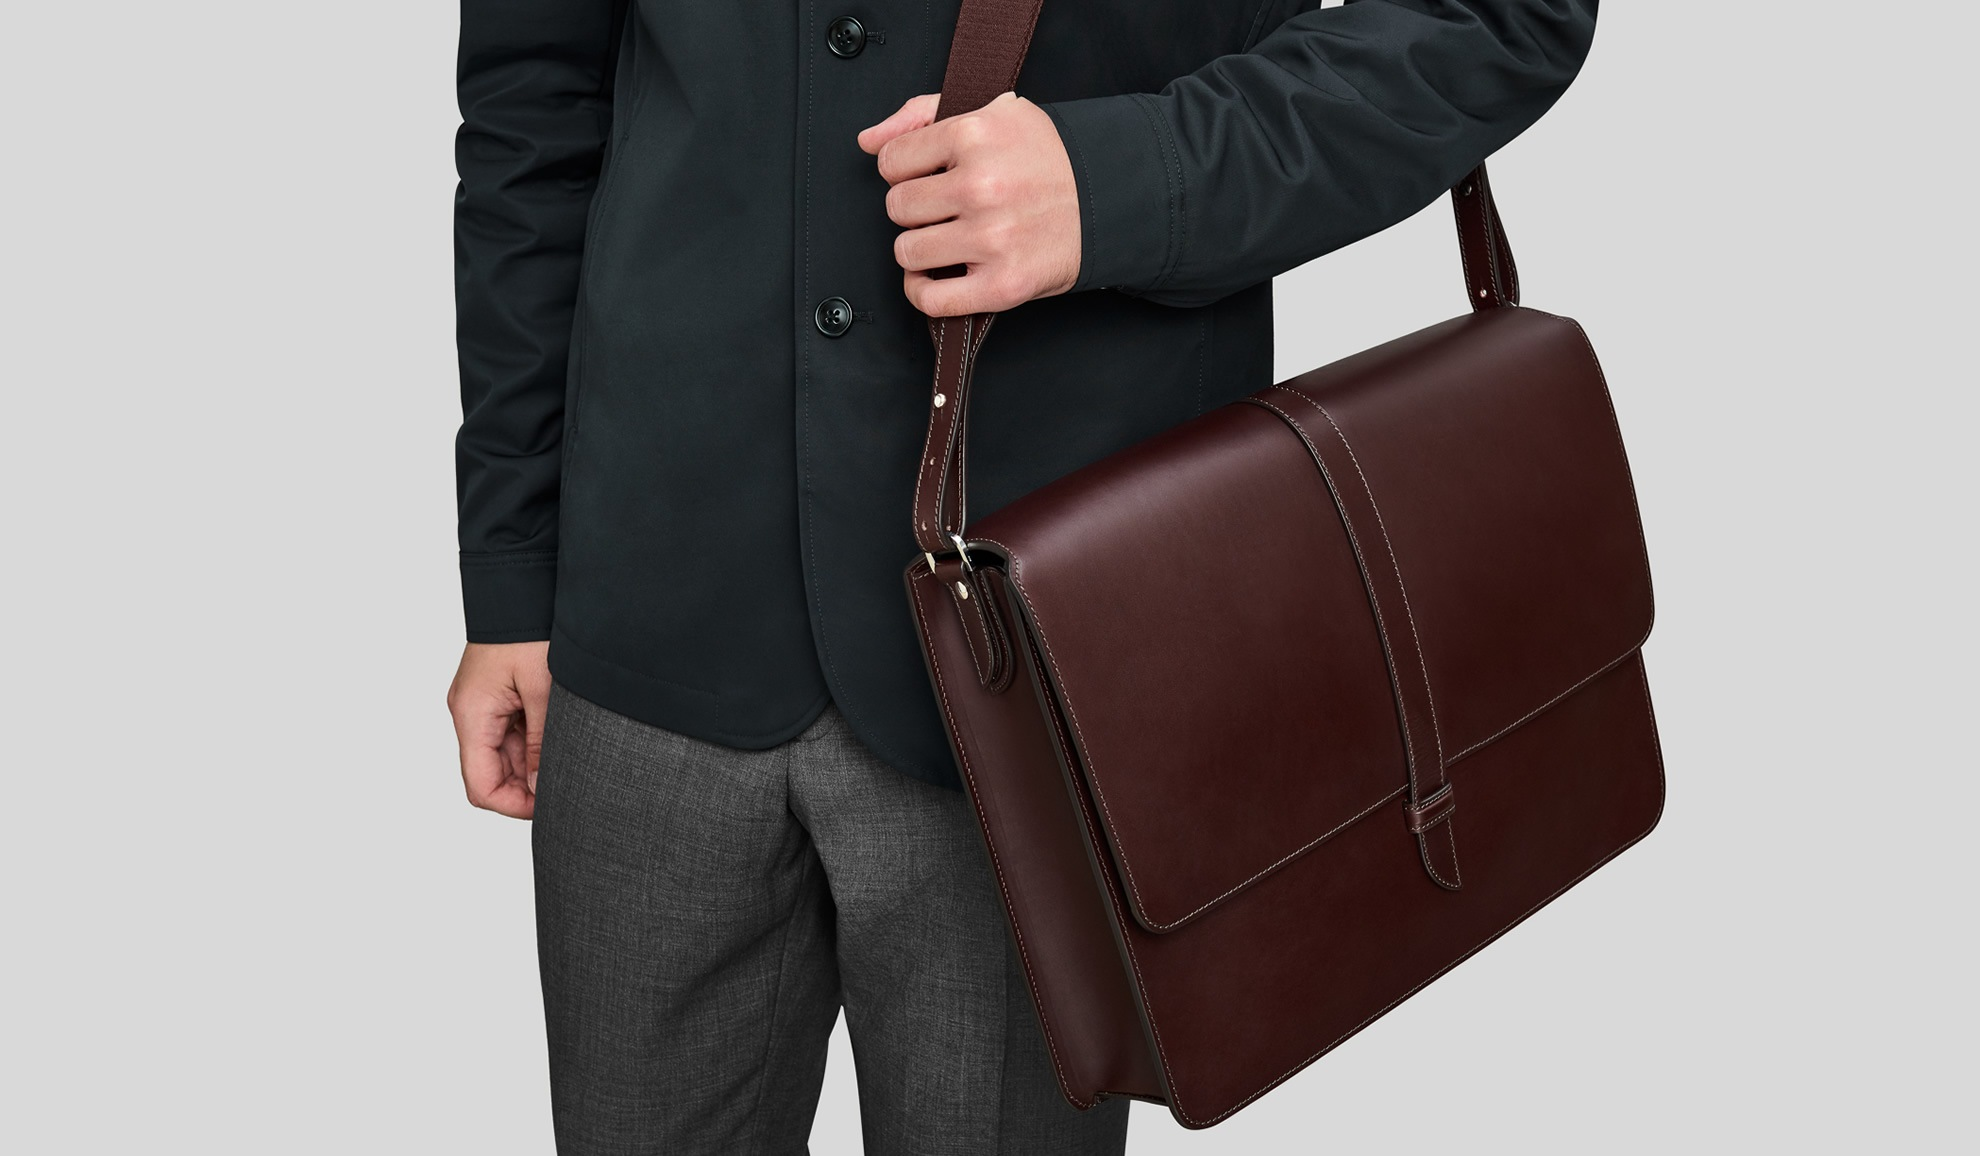 Things to Consider While Choosing Bags for Men